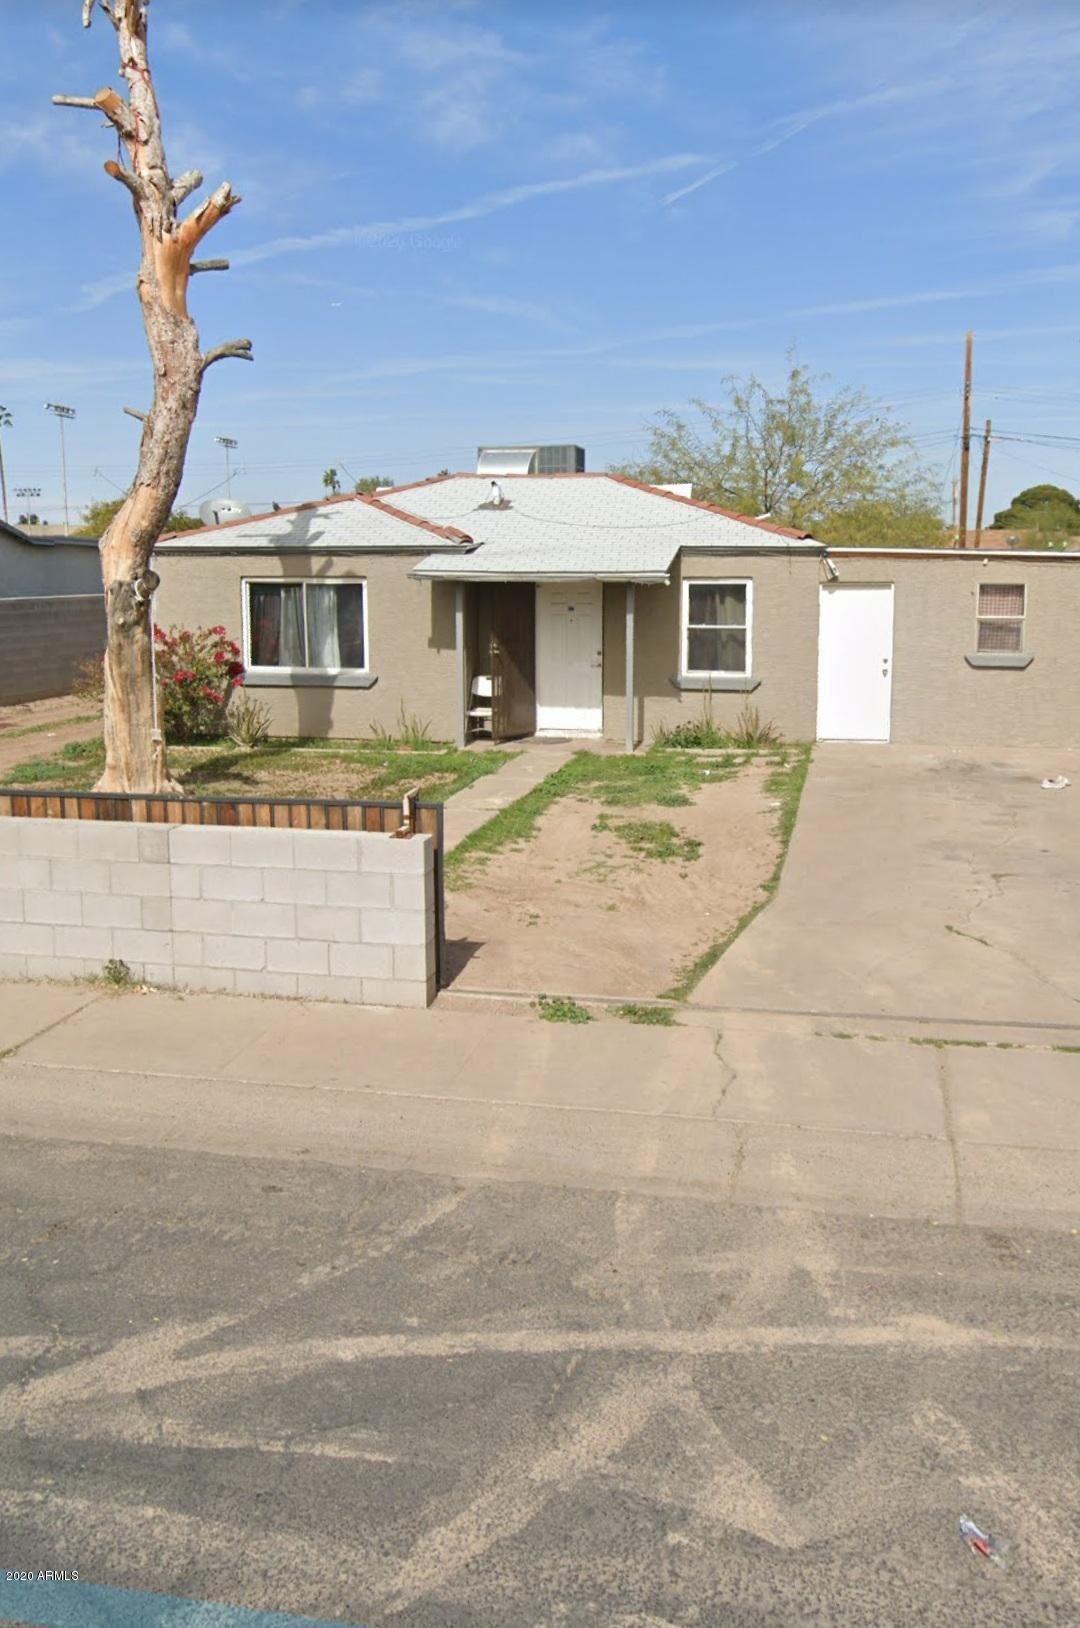 Property Image Of 3230 W Taylor Street In Phoenix, Az